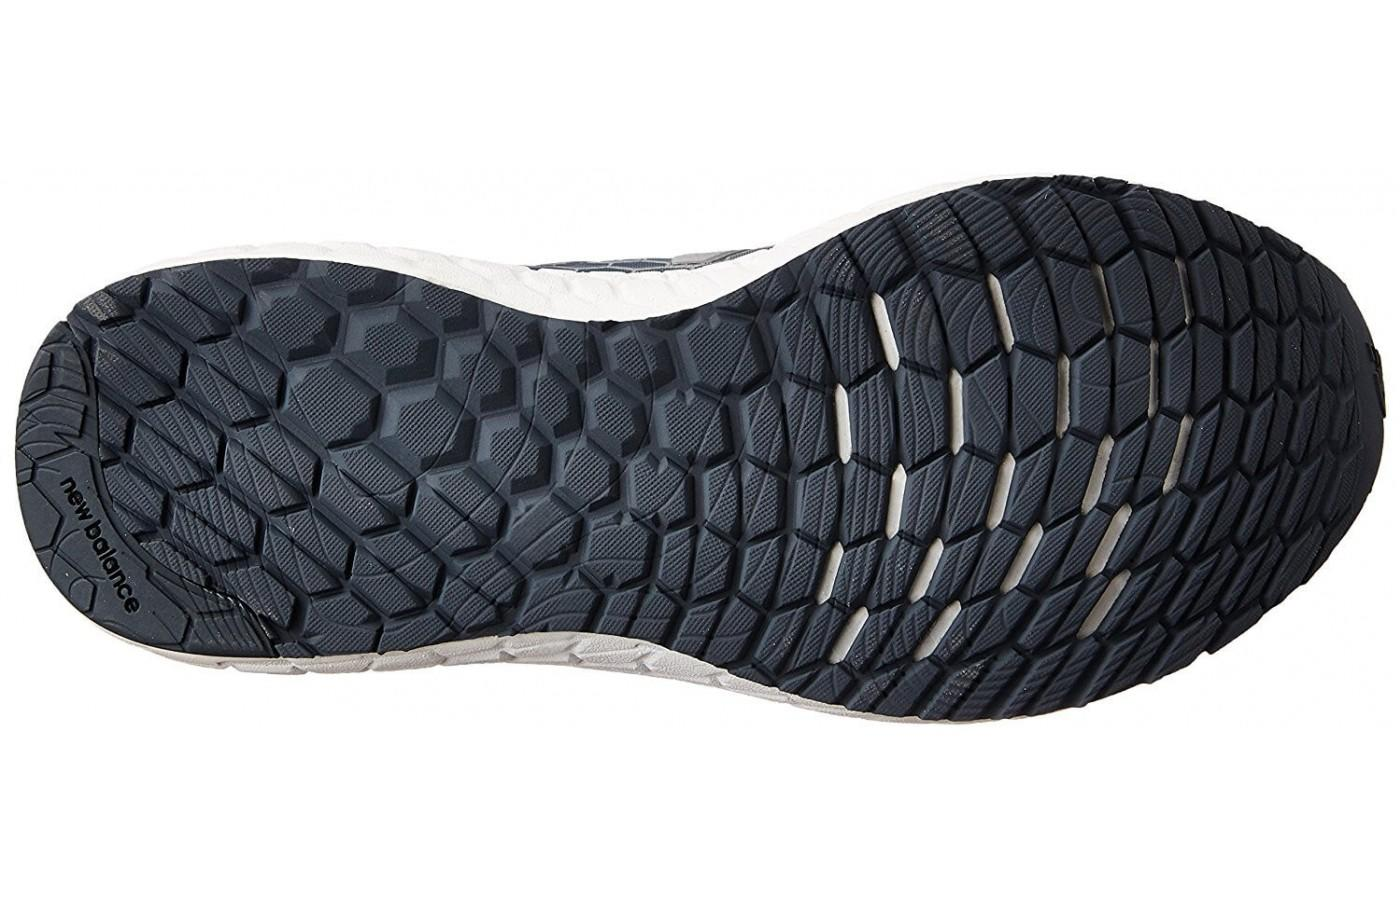 The blown rubber outsole provides added durability